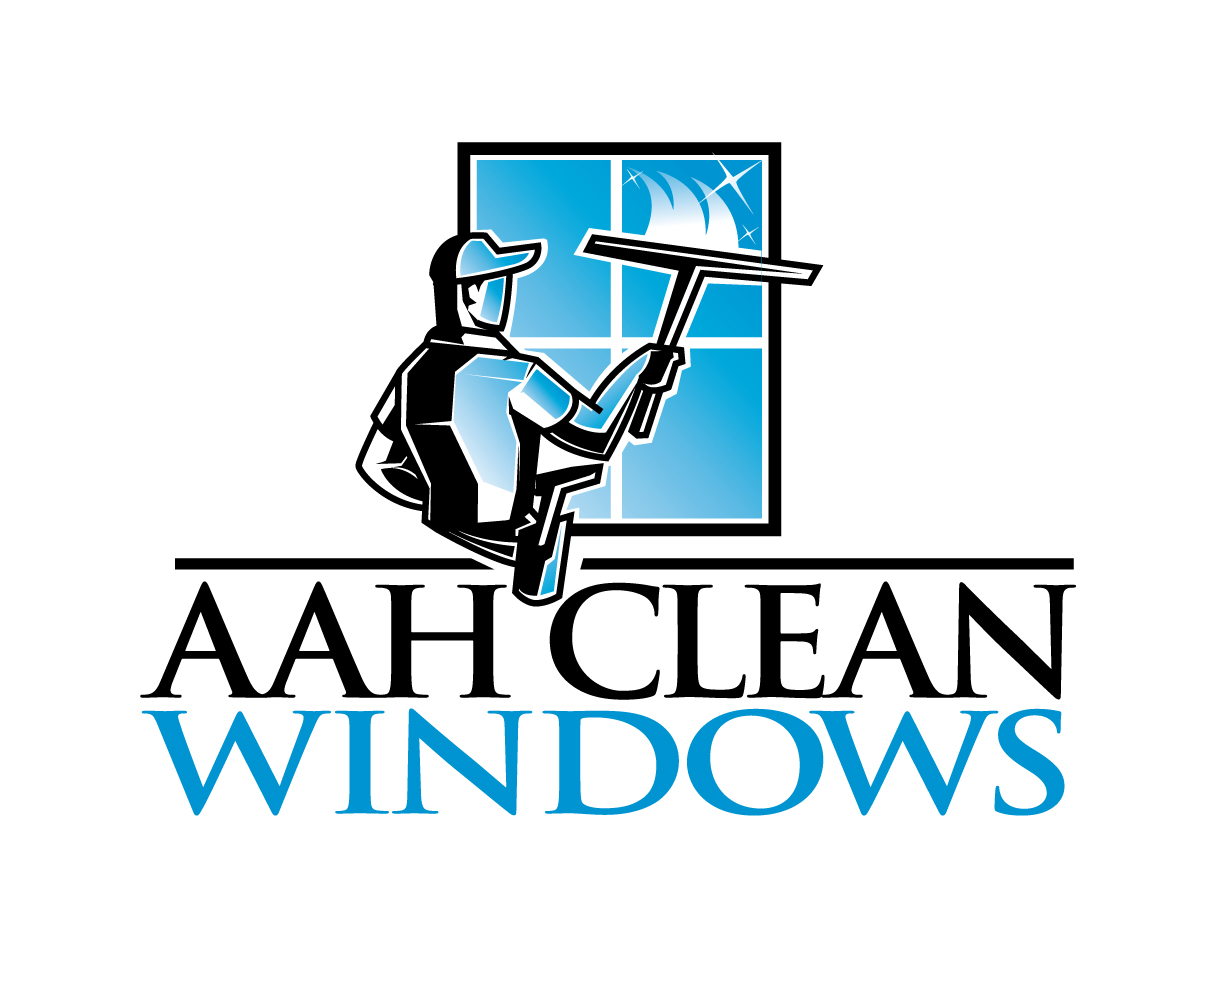 elegant playful window cleaning logo design for aah clean windows rh designcrowd com window cleaning logos illustrator window cleaning logo ideas